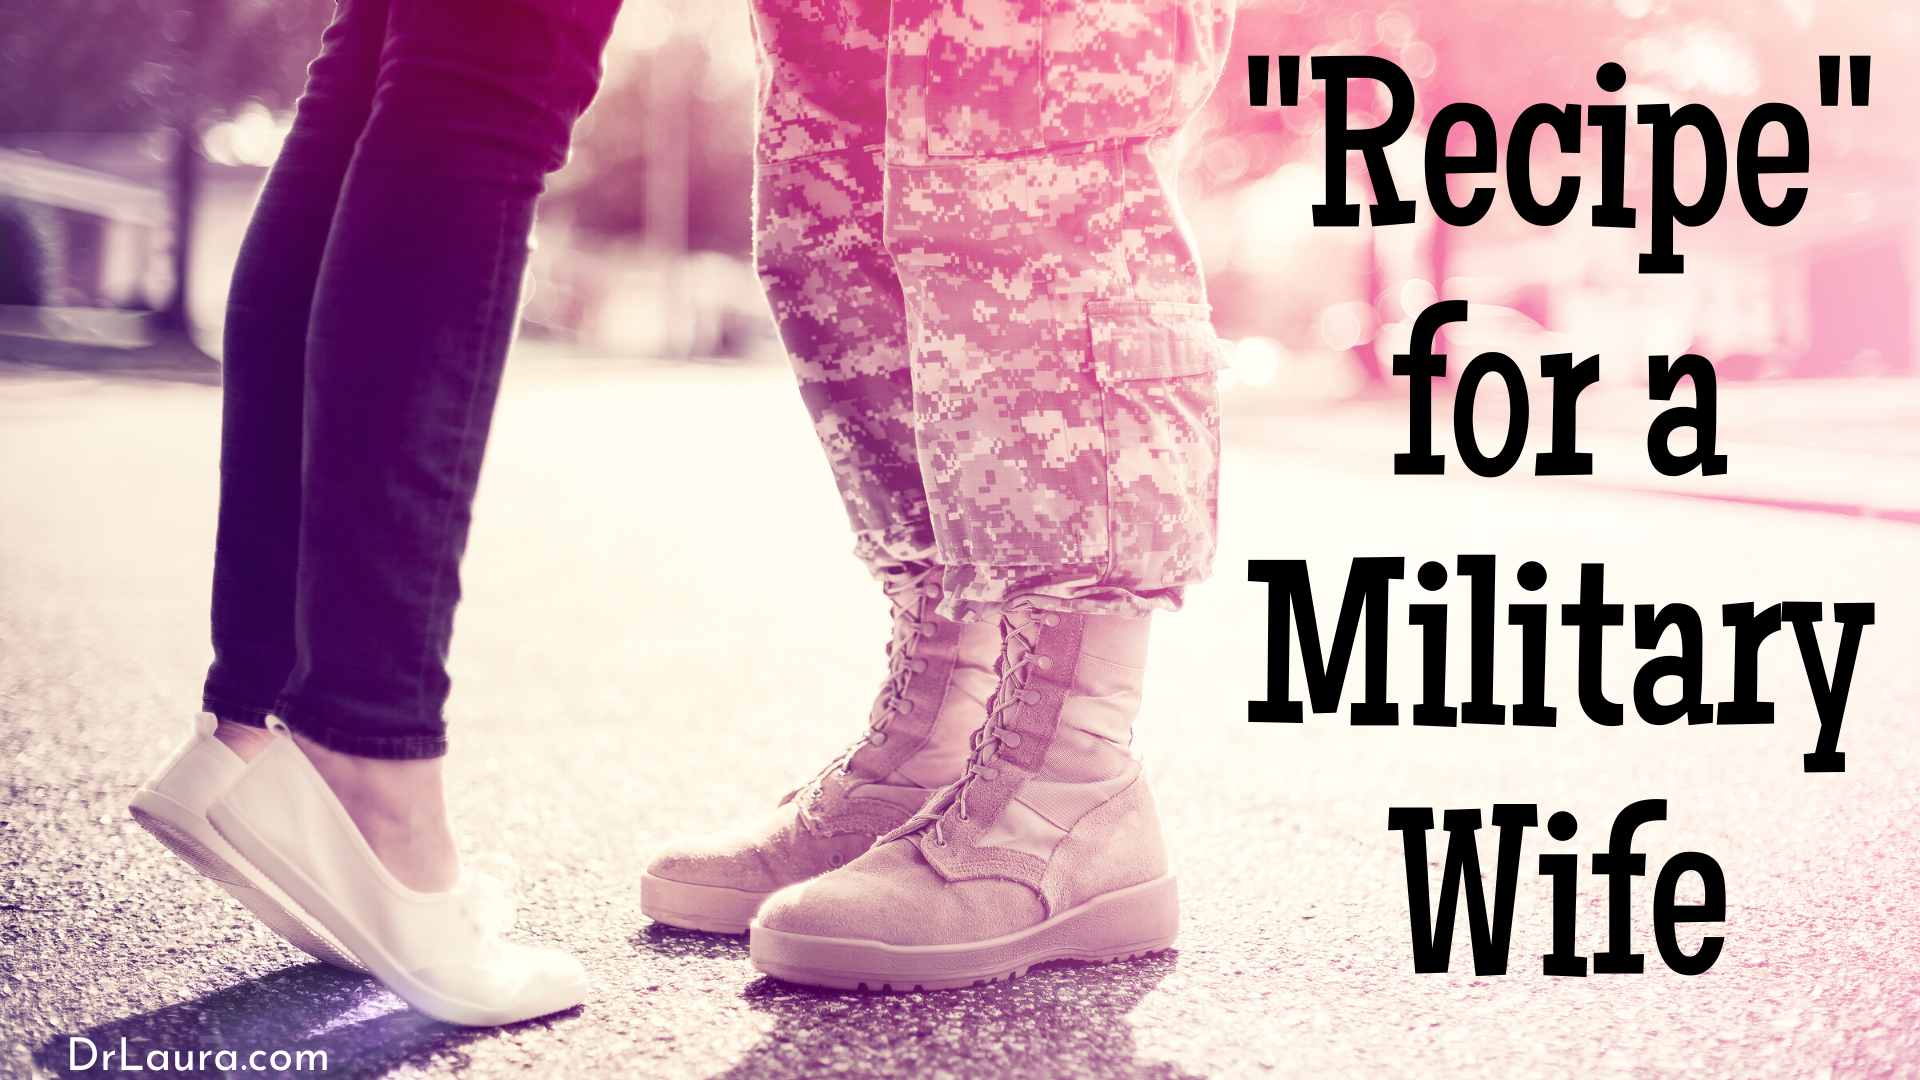 Email of the Day: Recipe for a Military Wife